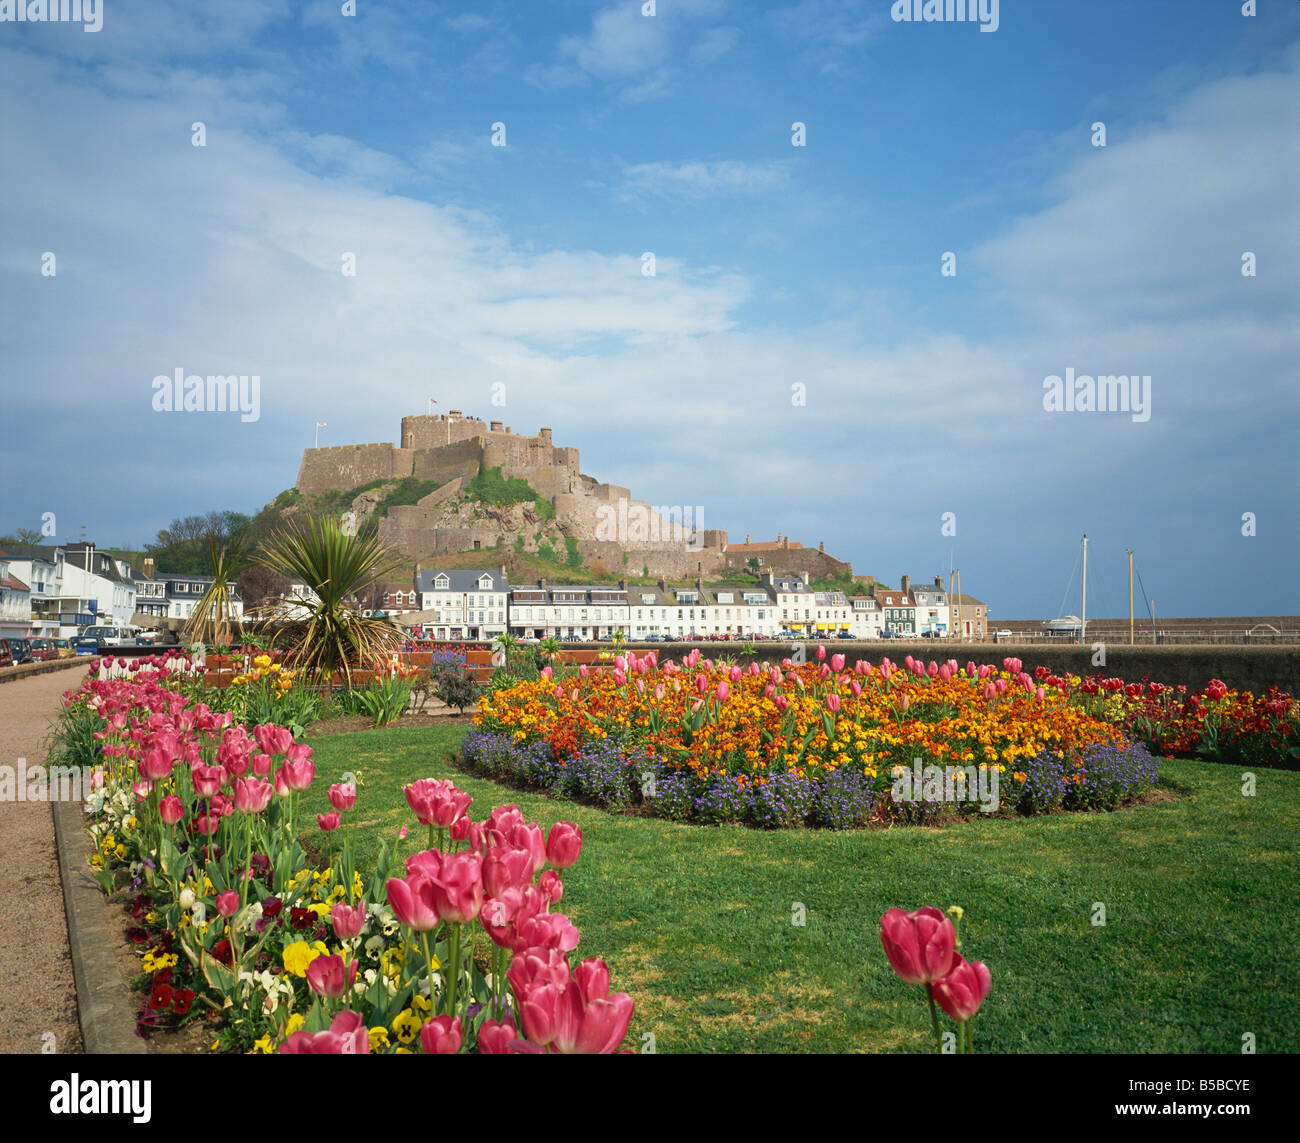 Mount Orgueil Castle Gorey St Martin Jersey Channel Islands United Kingdom Europe - Stock Image